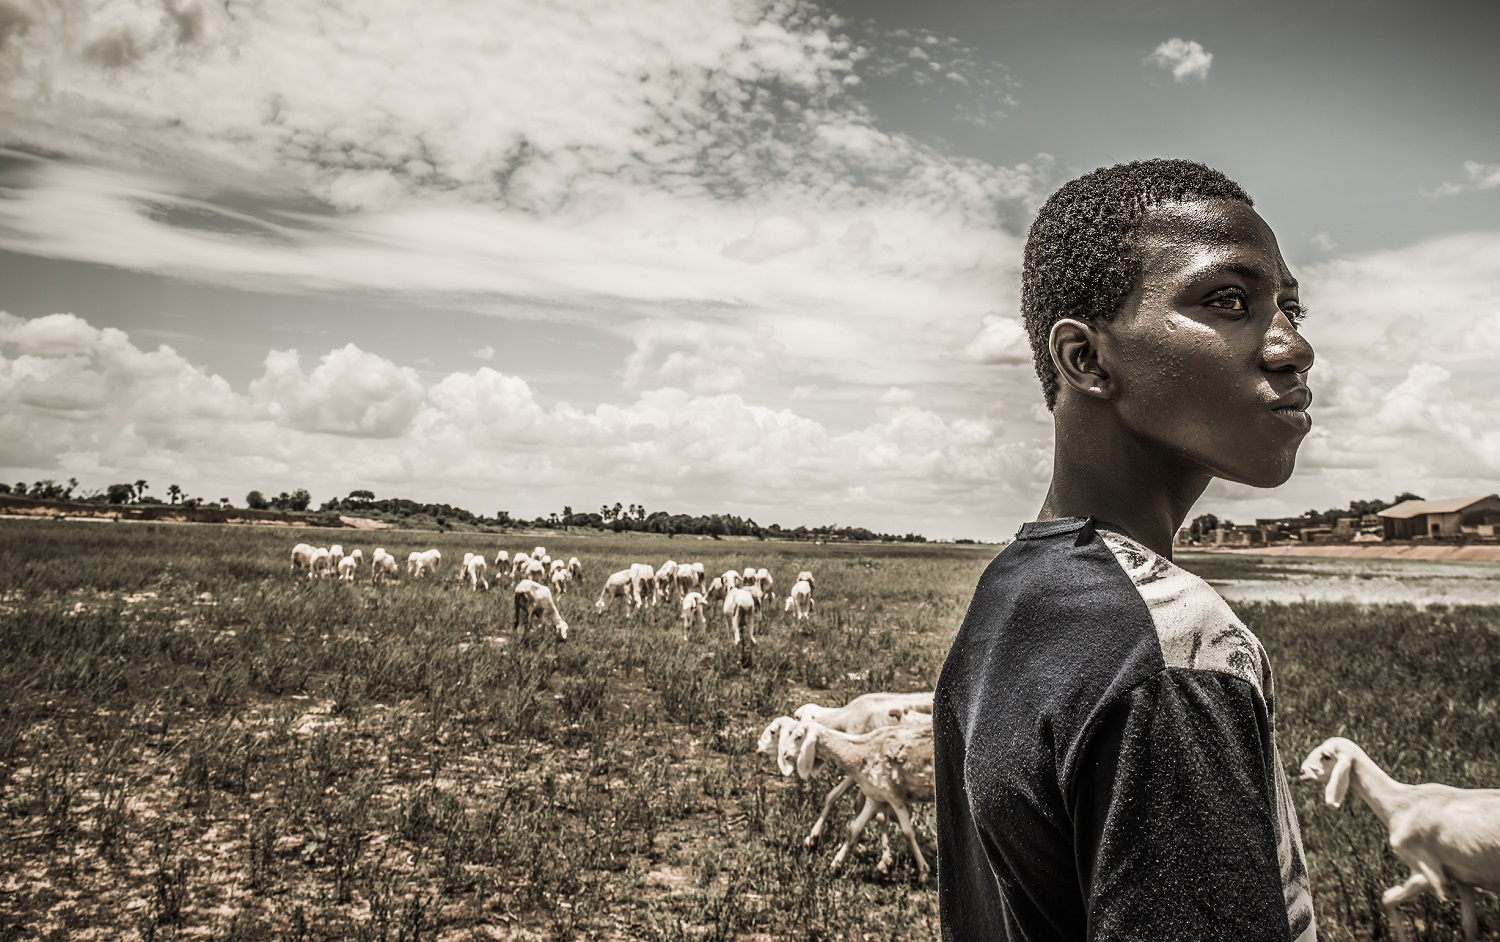 Boy with his goat herd on a dry river bed in Mali